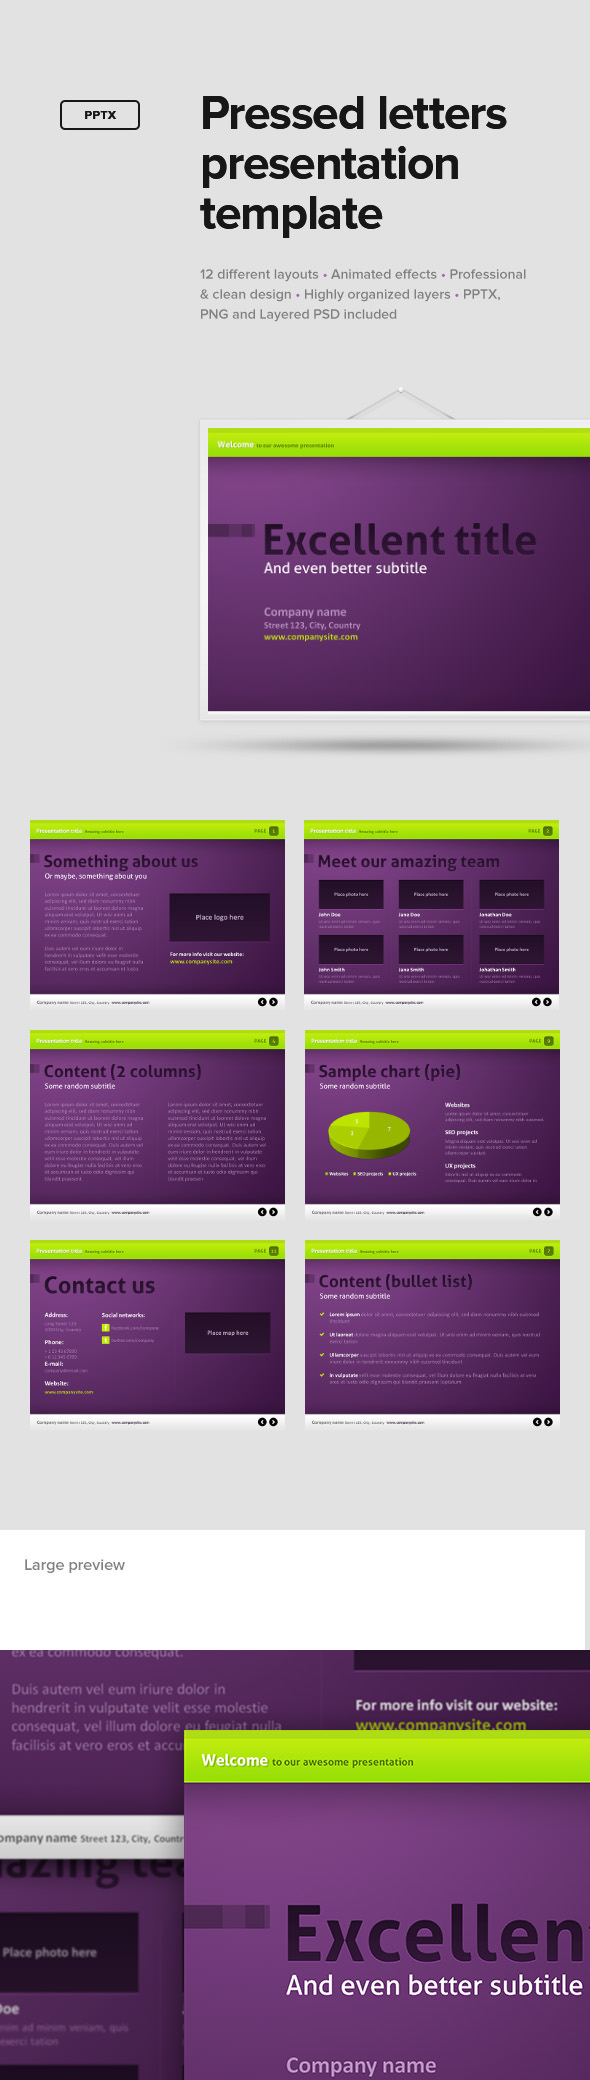 Pressed Letters Presentation Template - PowerPoint Templates Presentation Templates